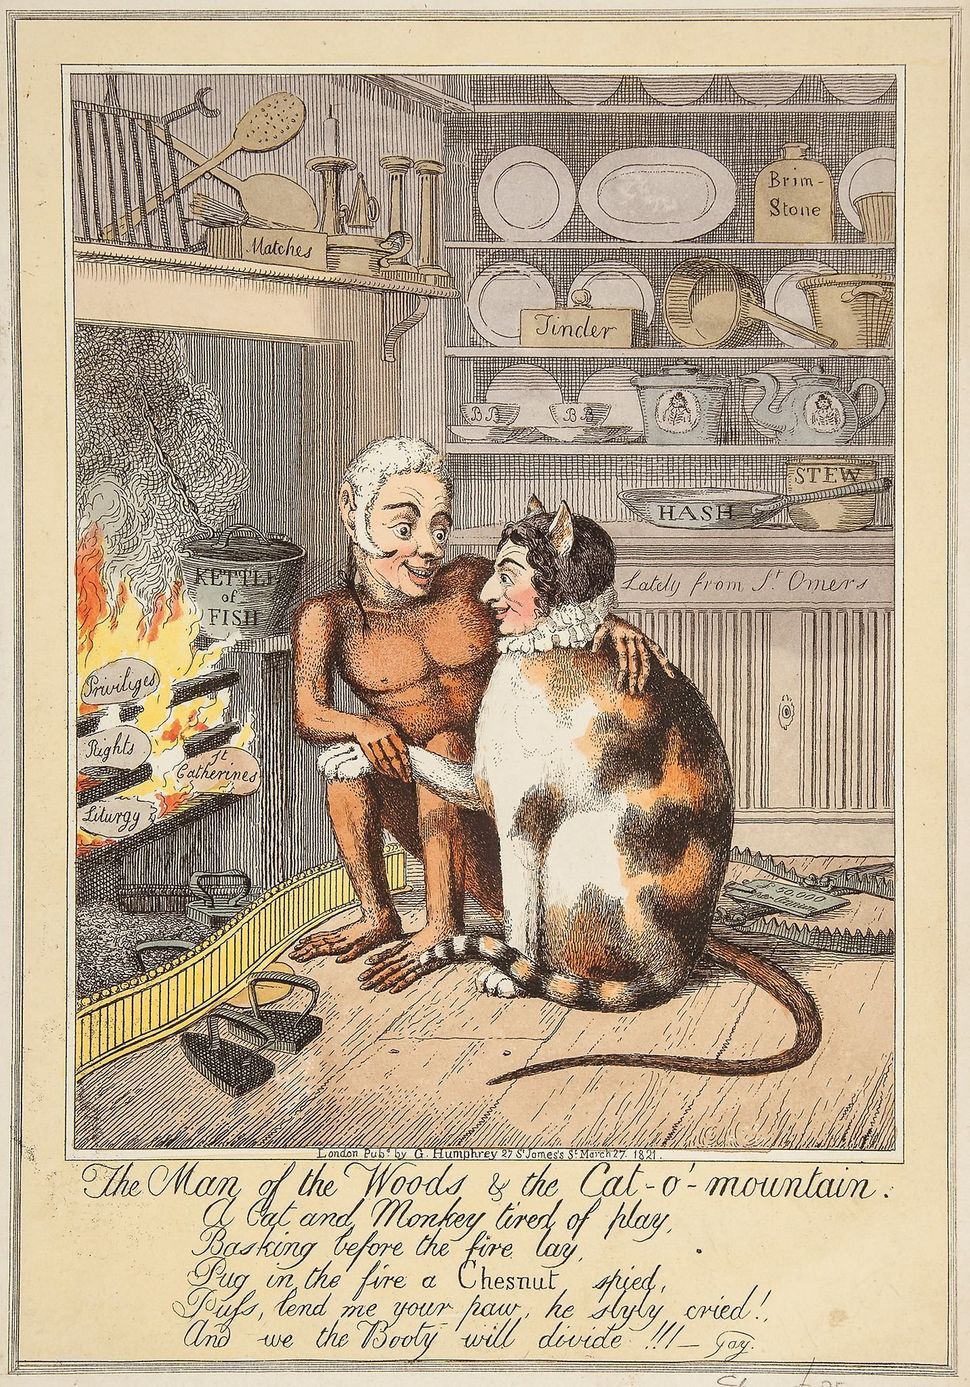 189. Lane (Theodore, 1800-1828) The man of the woods & the cat-o'mountain etching with hand-colouring, on wove pape